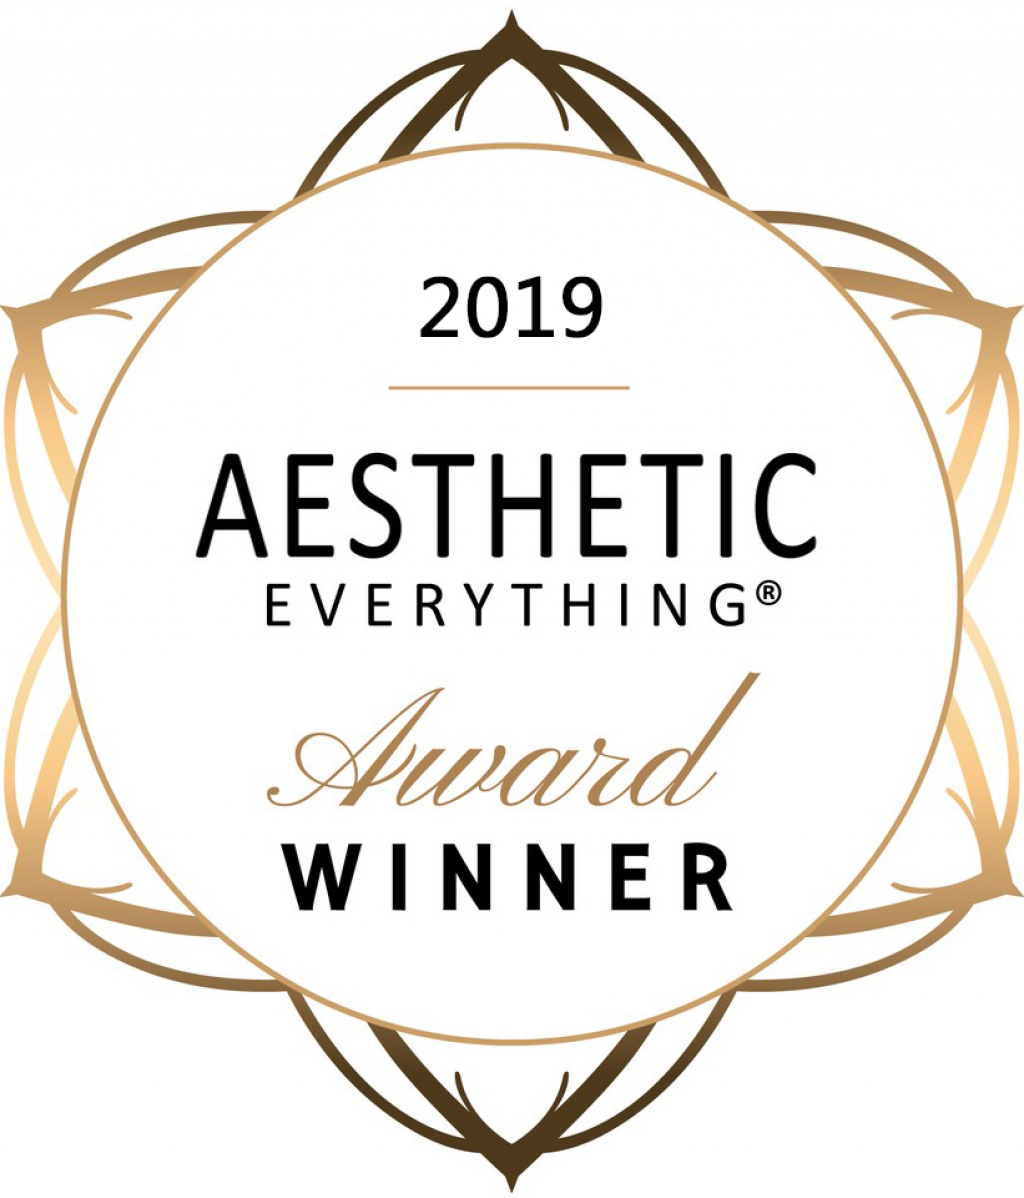 2019 Aesthetic Everything Award Winner | Young Medical Spa | Central Valley PA, Lansdale PA, Forty Port PA